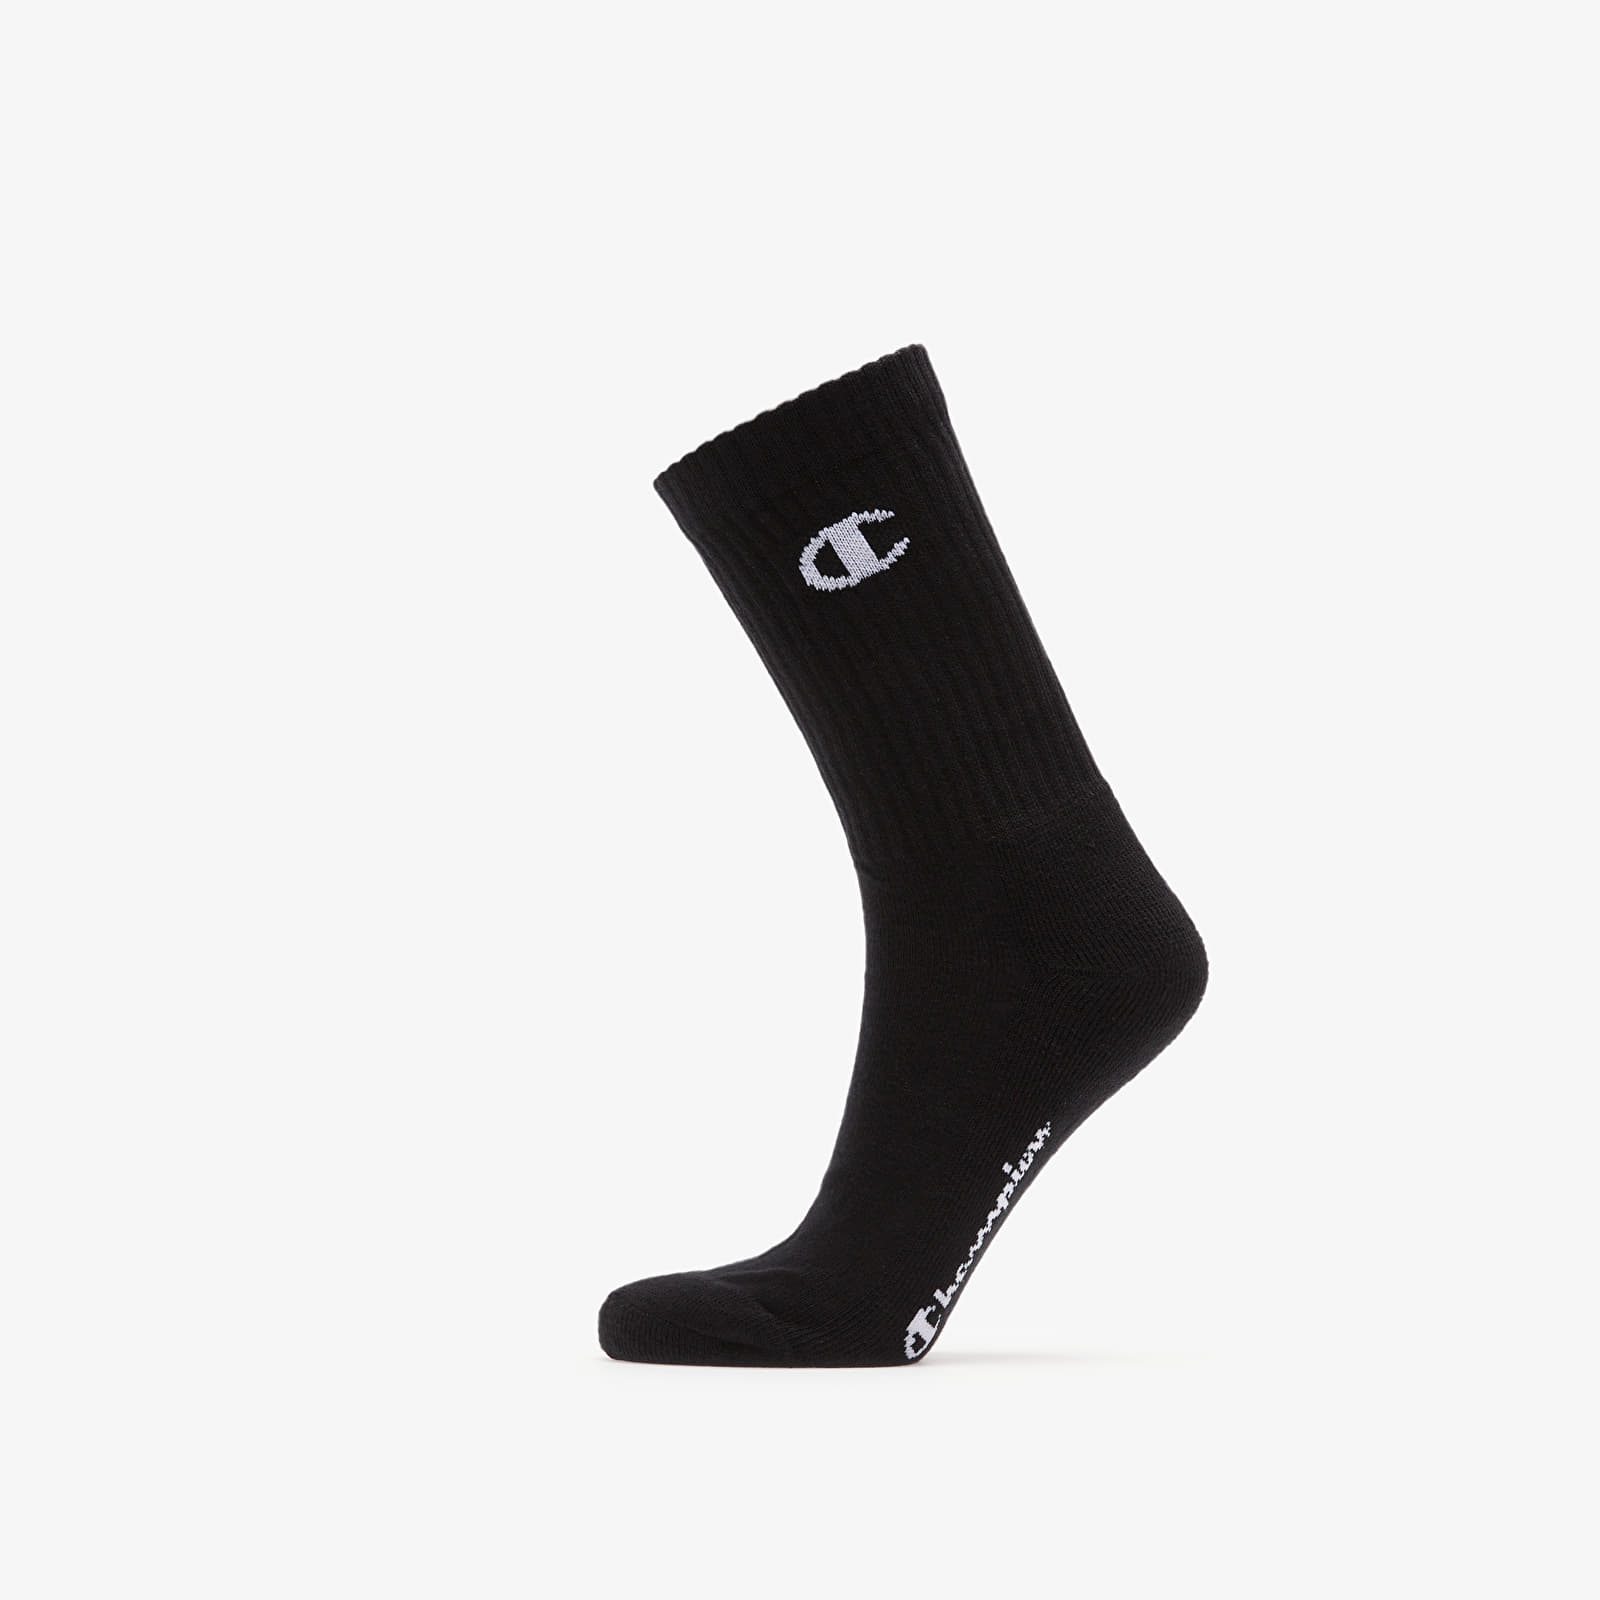 Čarape Champion 3Pack Socks Multicolor